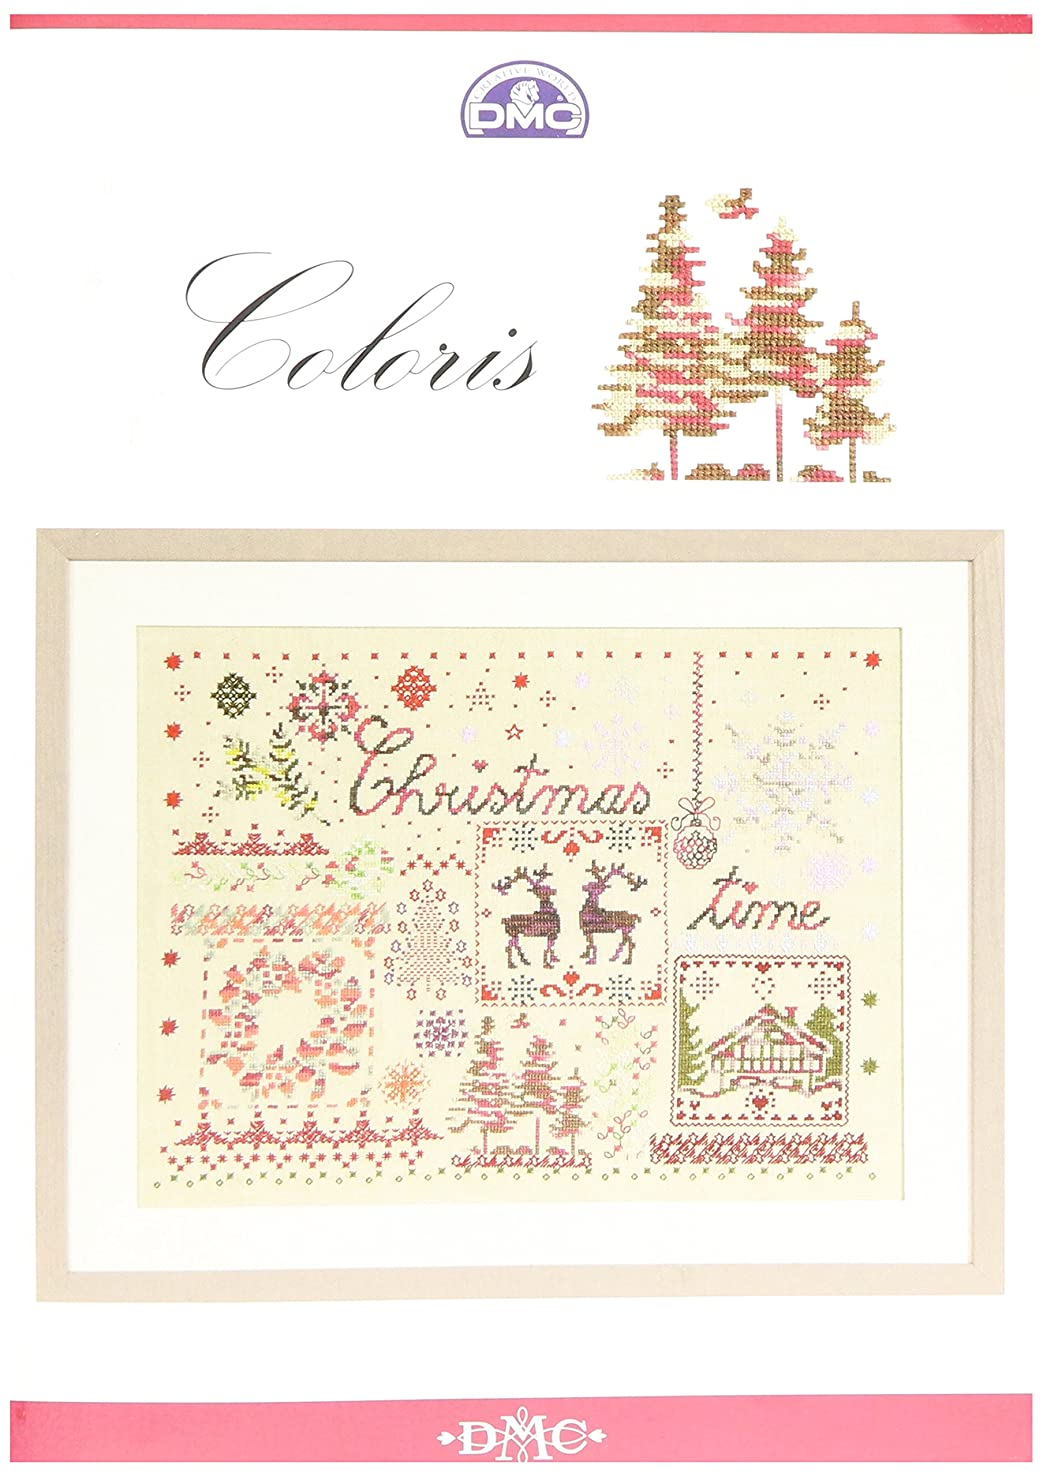 DMC Coloris Pattern Book Christmas